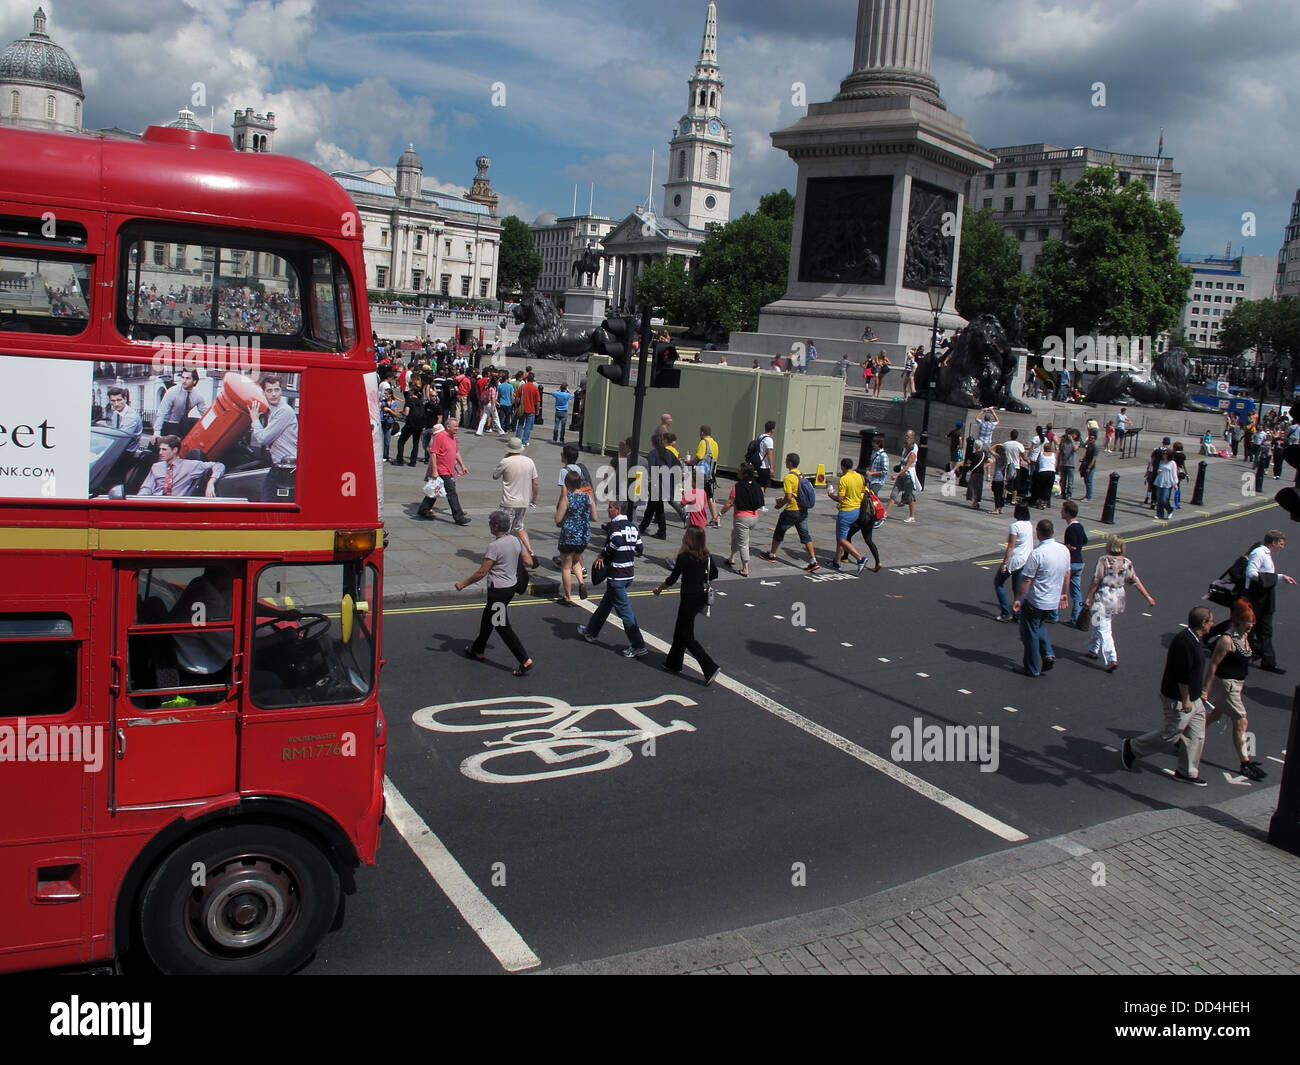 Red London Double Decker bus, at Trafalgar Square, Central London, South East England, UK - Stock Image